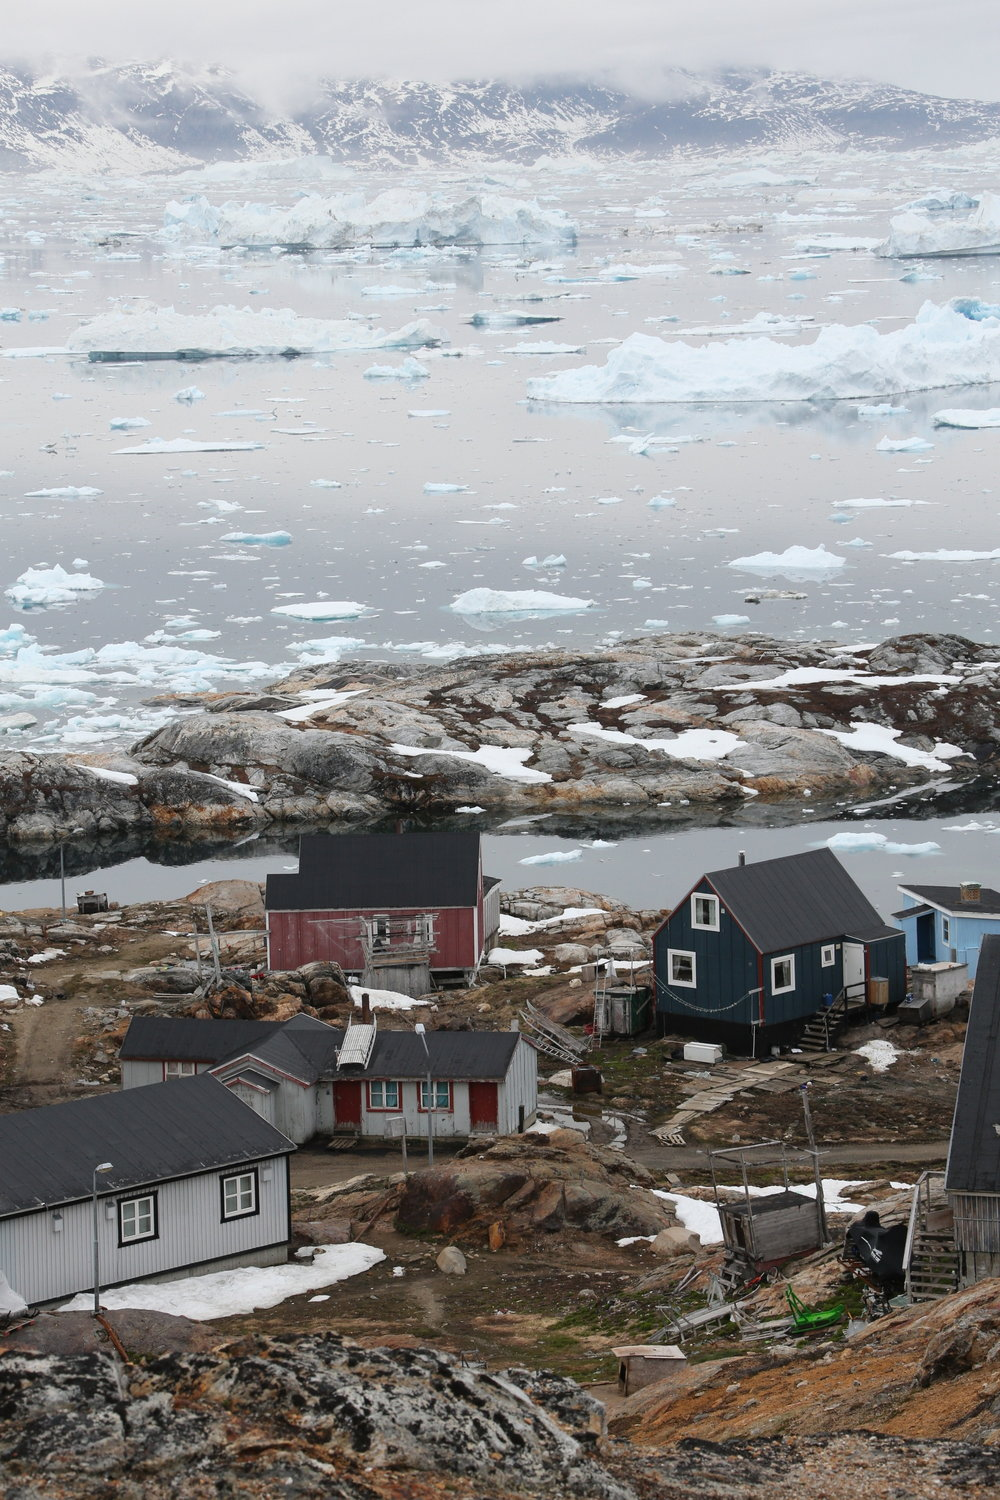 The settlement of Tinit, Greenland, with the ice fjord in the background.